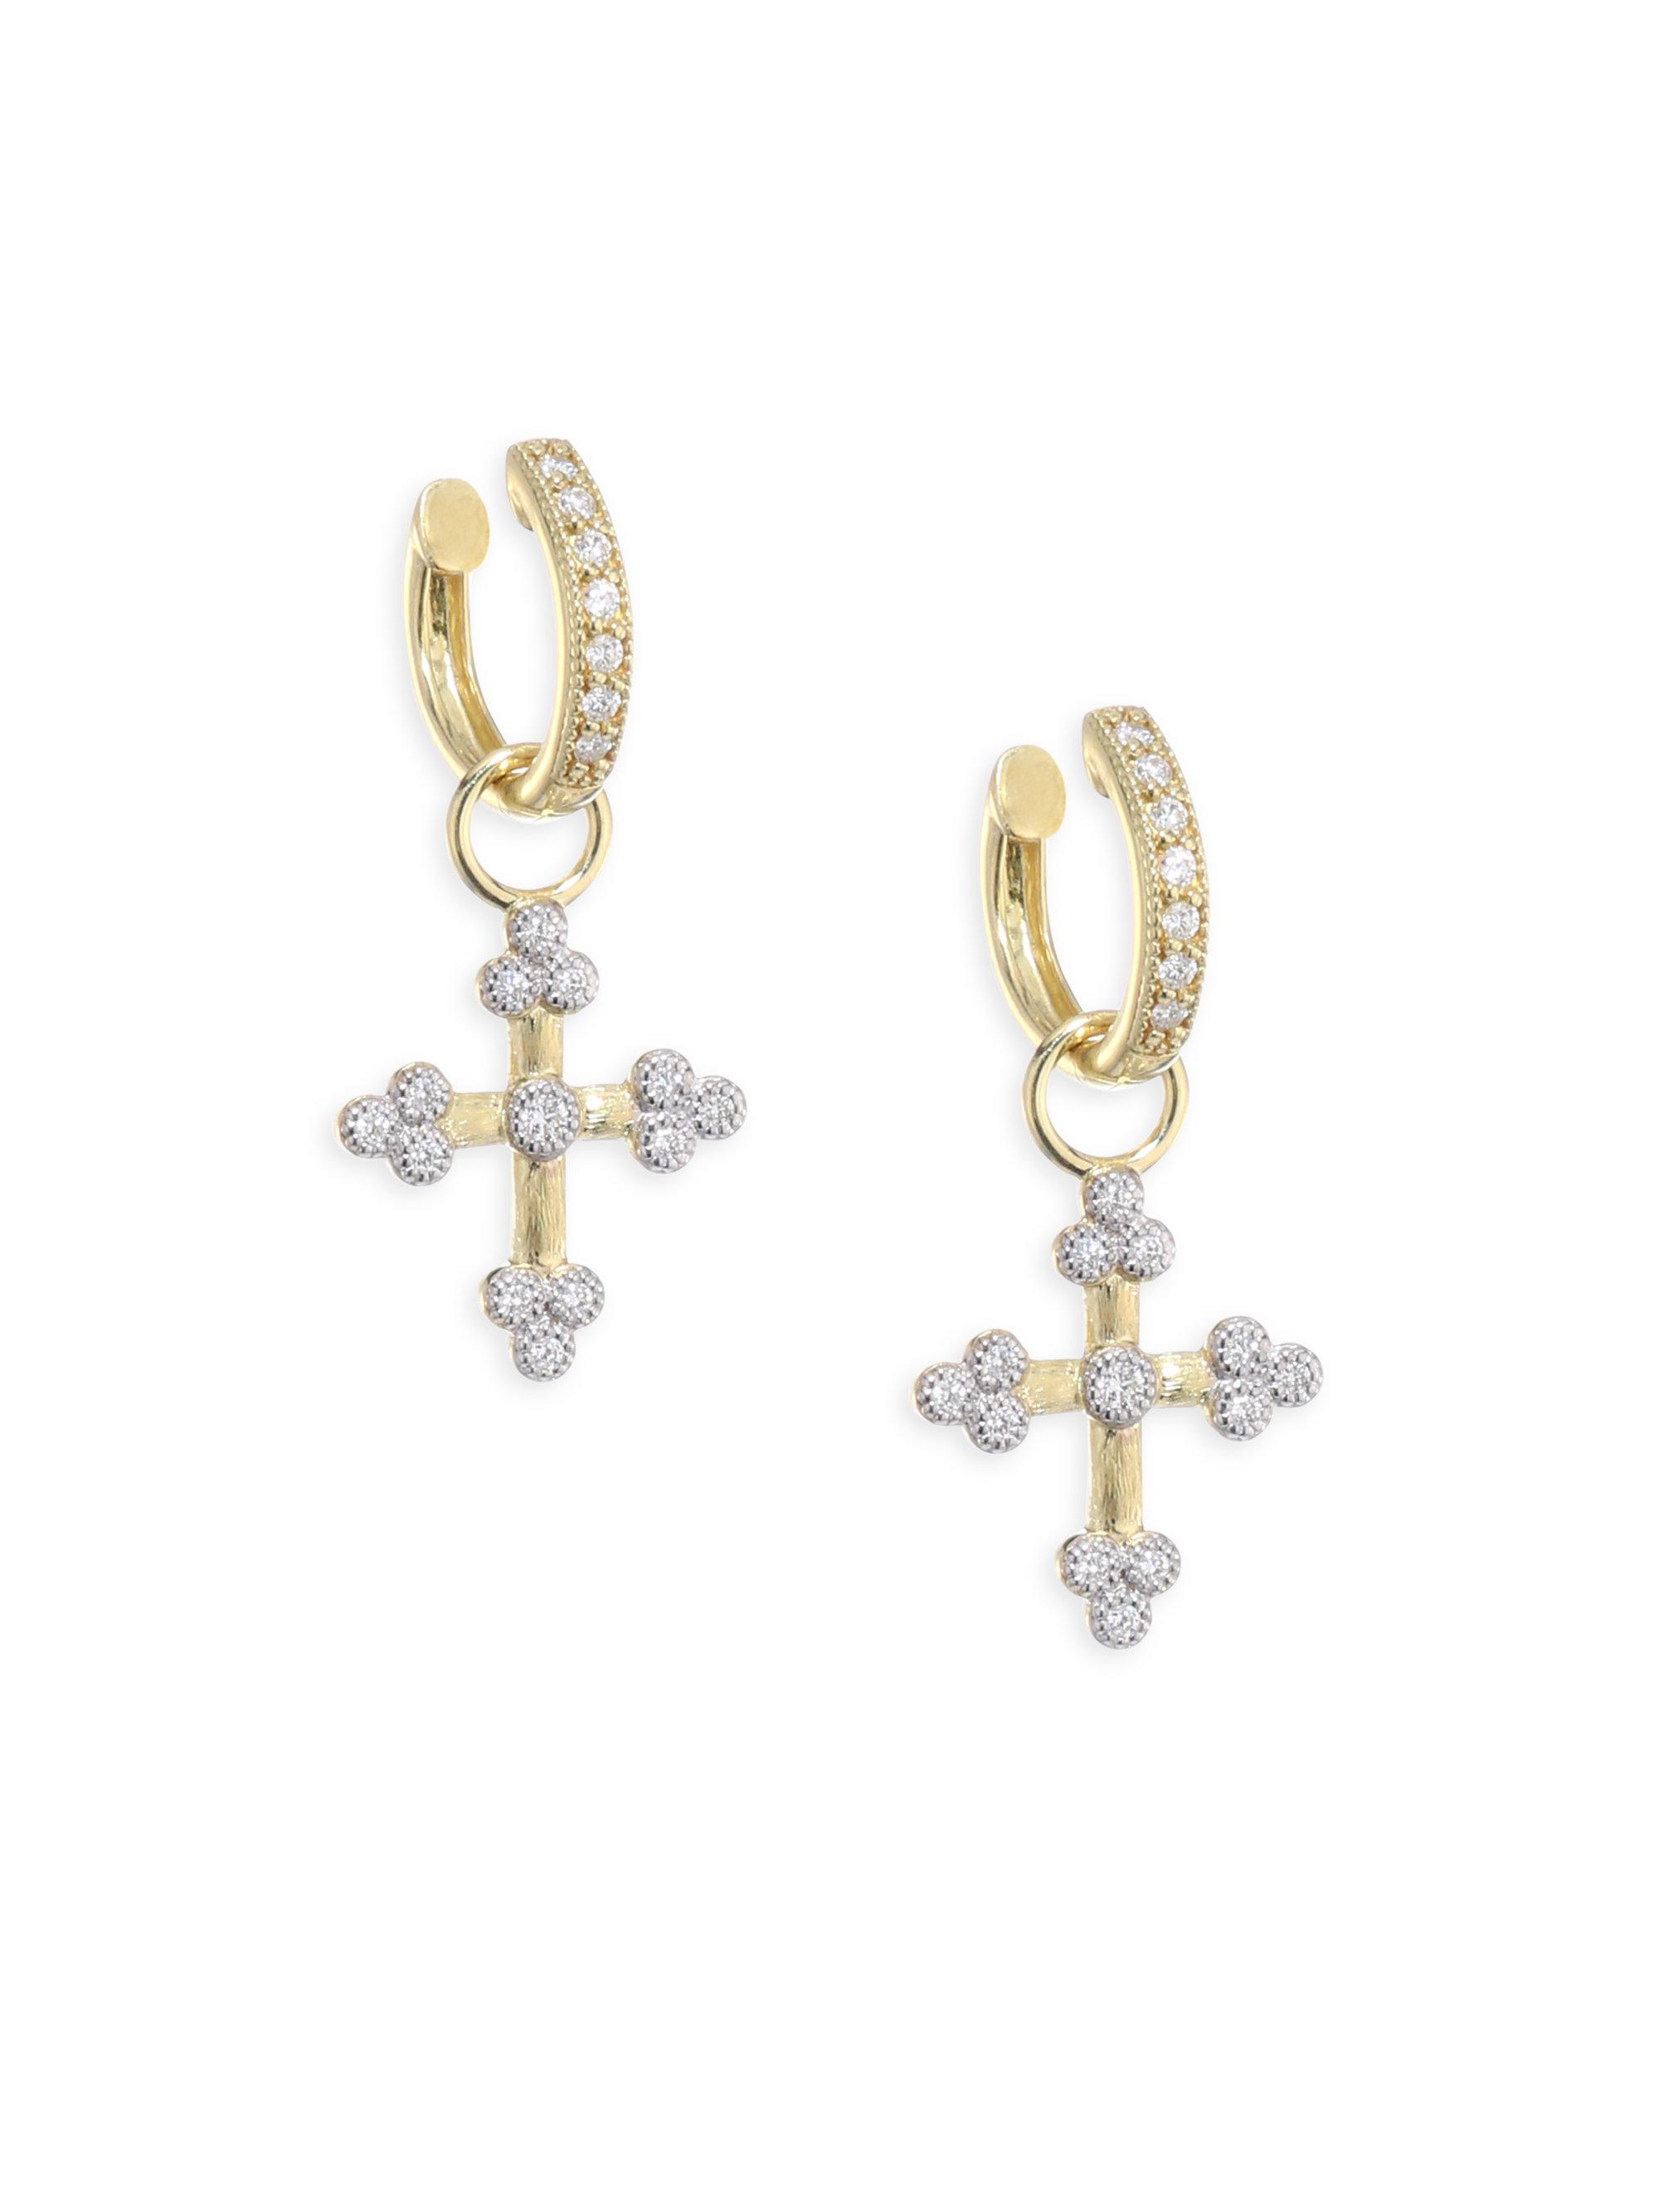 Jude Frances 18k Lisse Double Drop Diamond Kite Earring Charms XqWTY